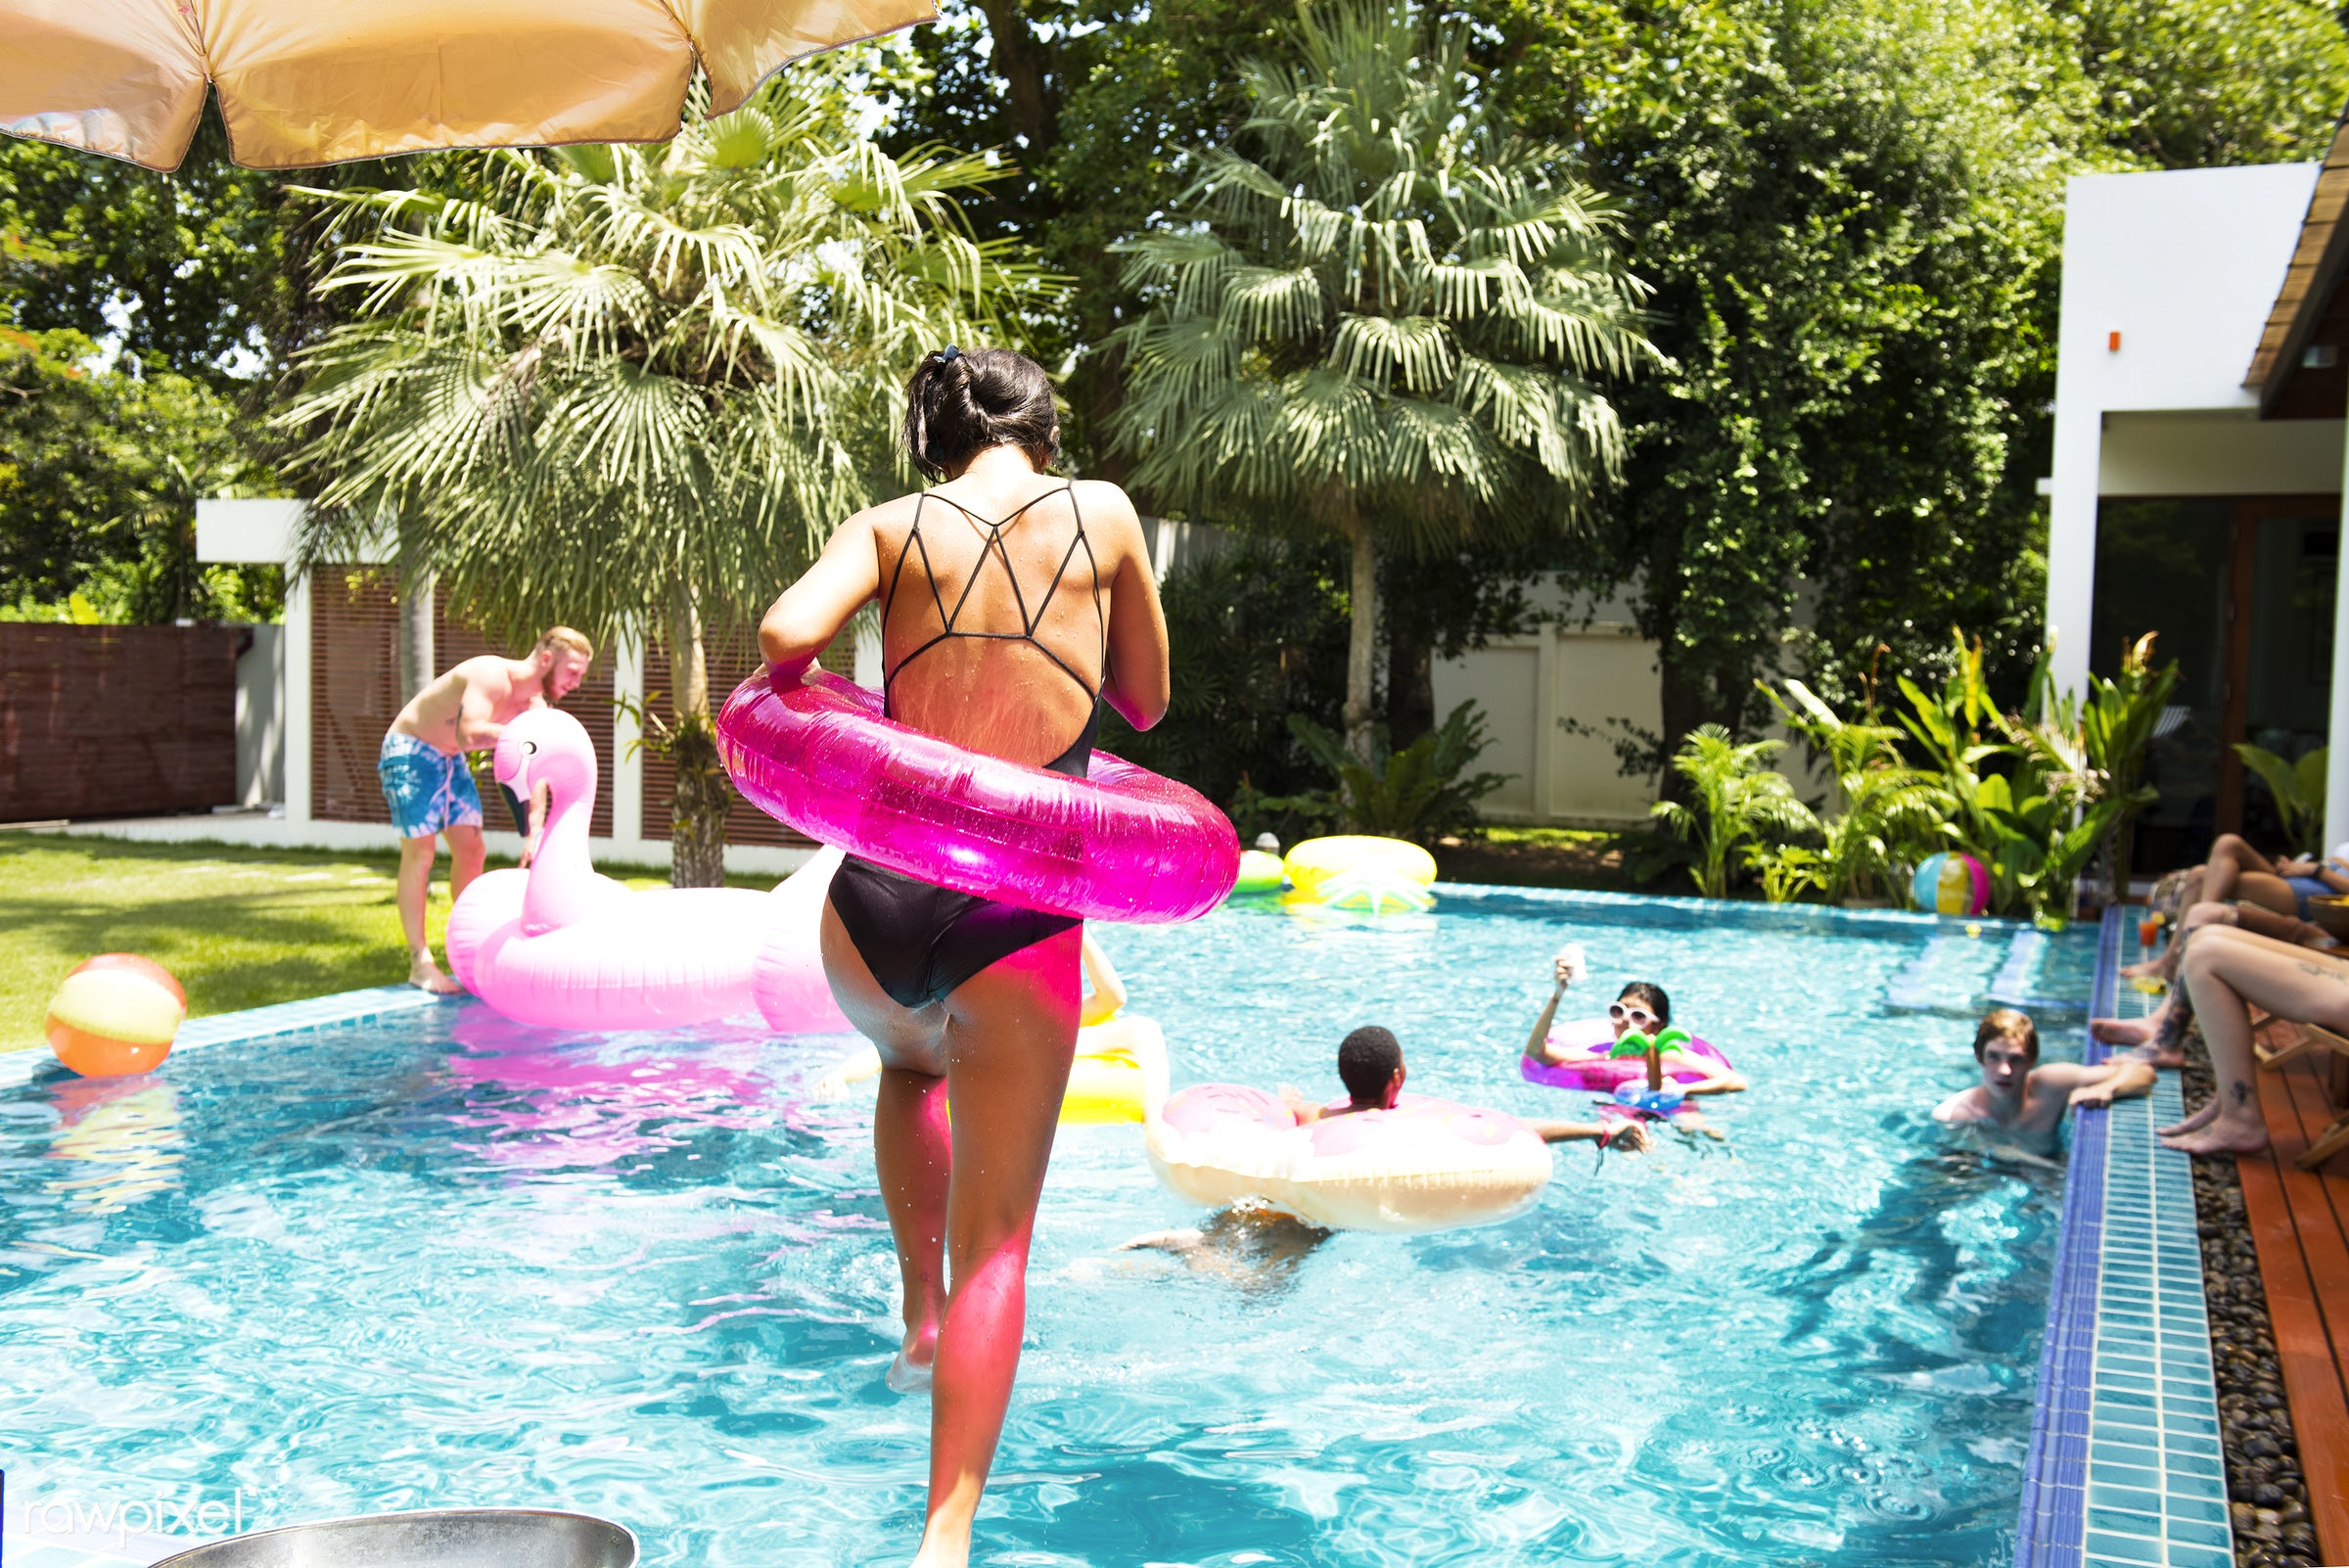 jumping, relax, diverse, recreation, party, people, together, asian, friends, pool, tubes, cheerful, enjoying, happiness,...